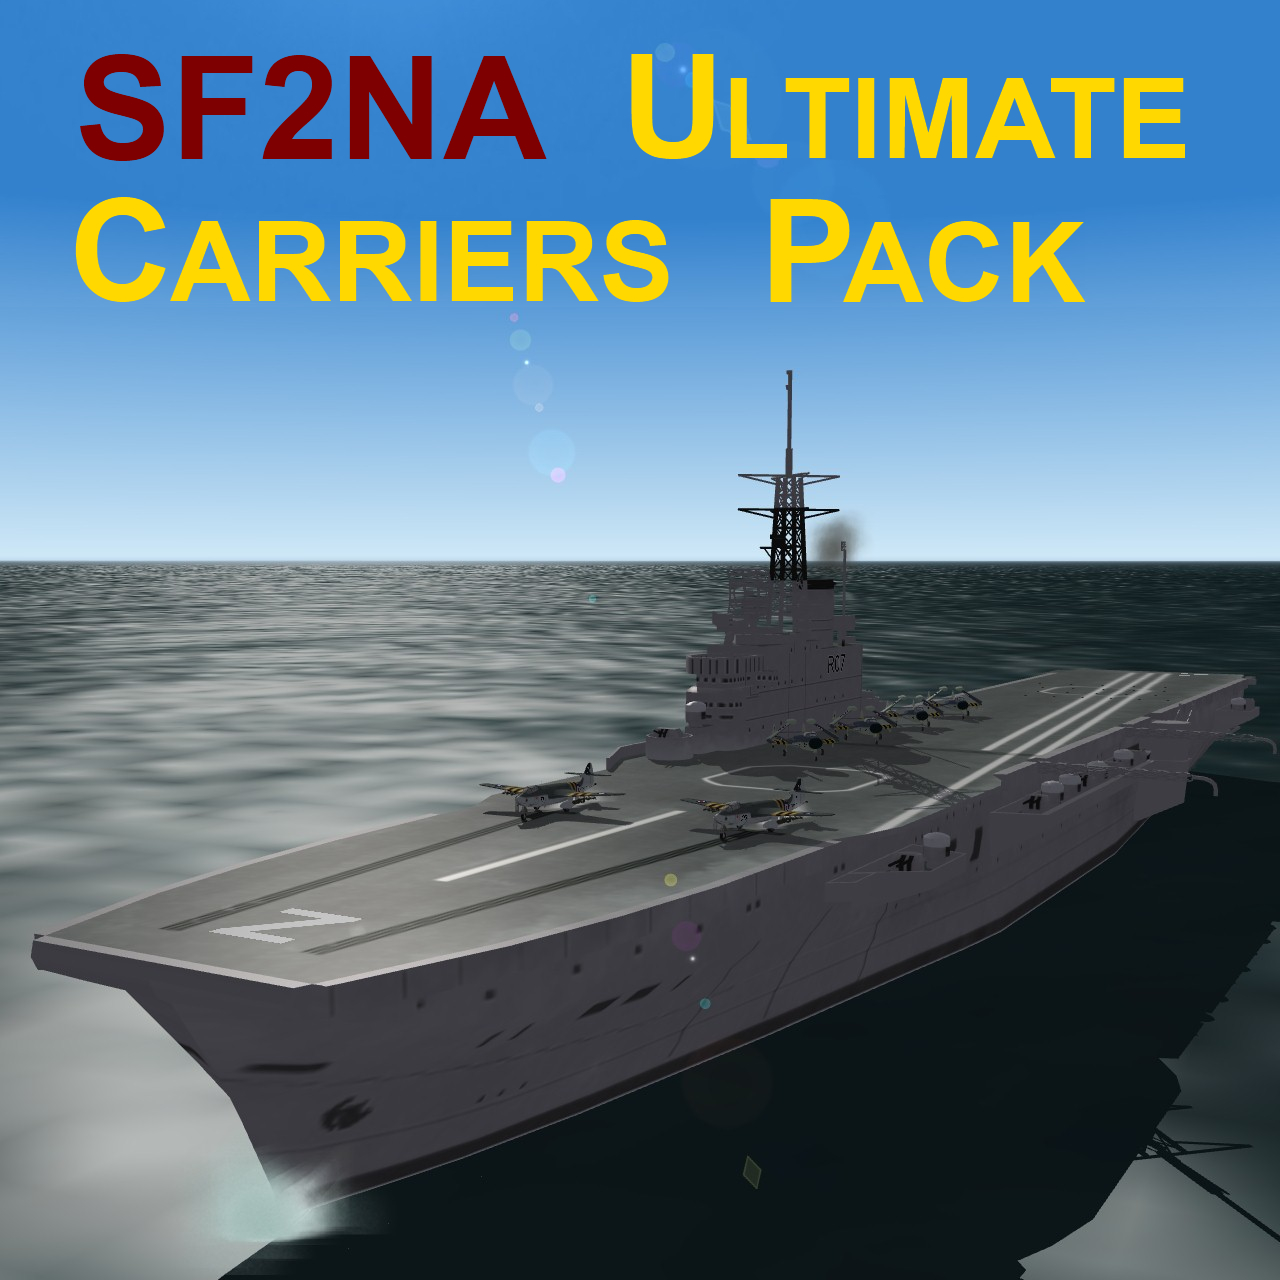 SF2NA Ultimate Carriers Pack